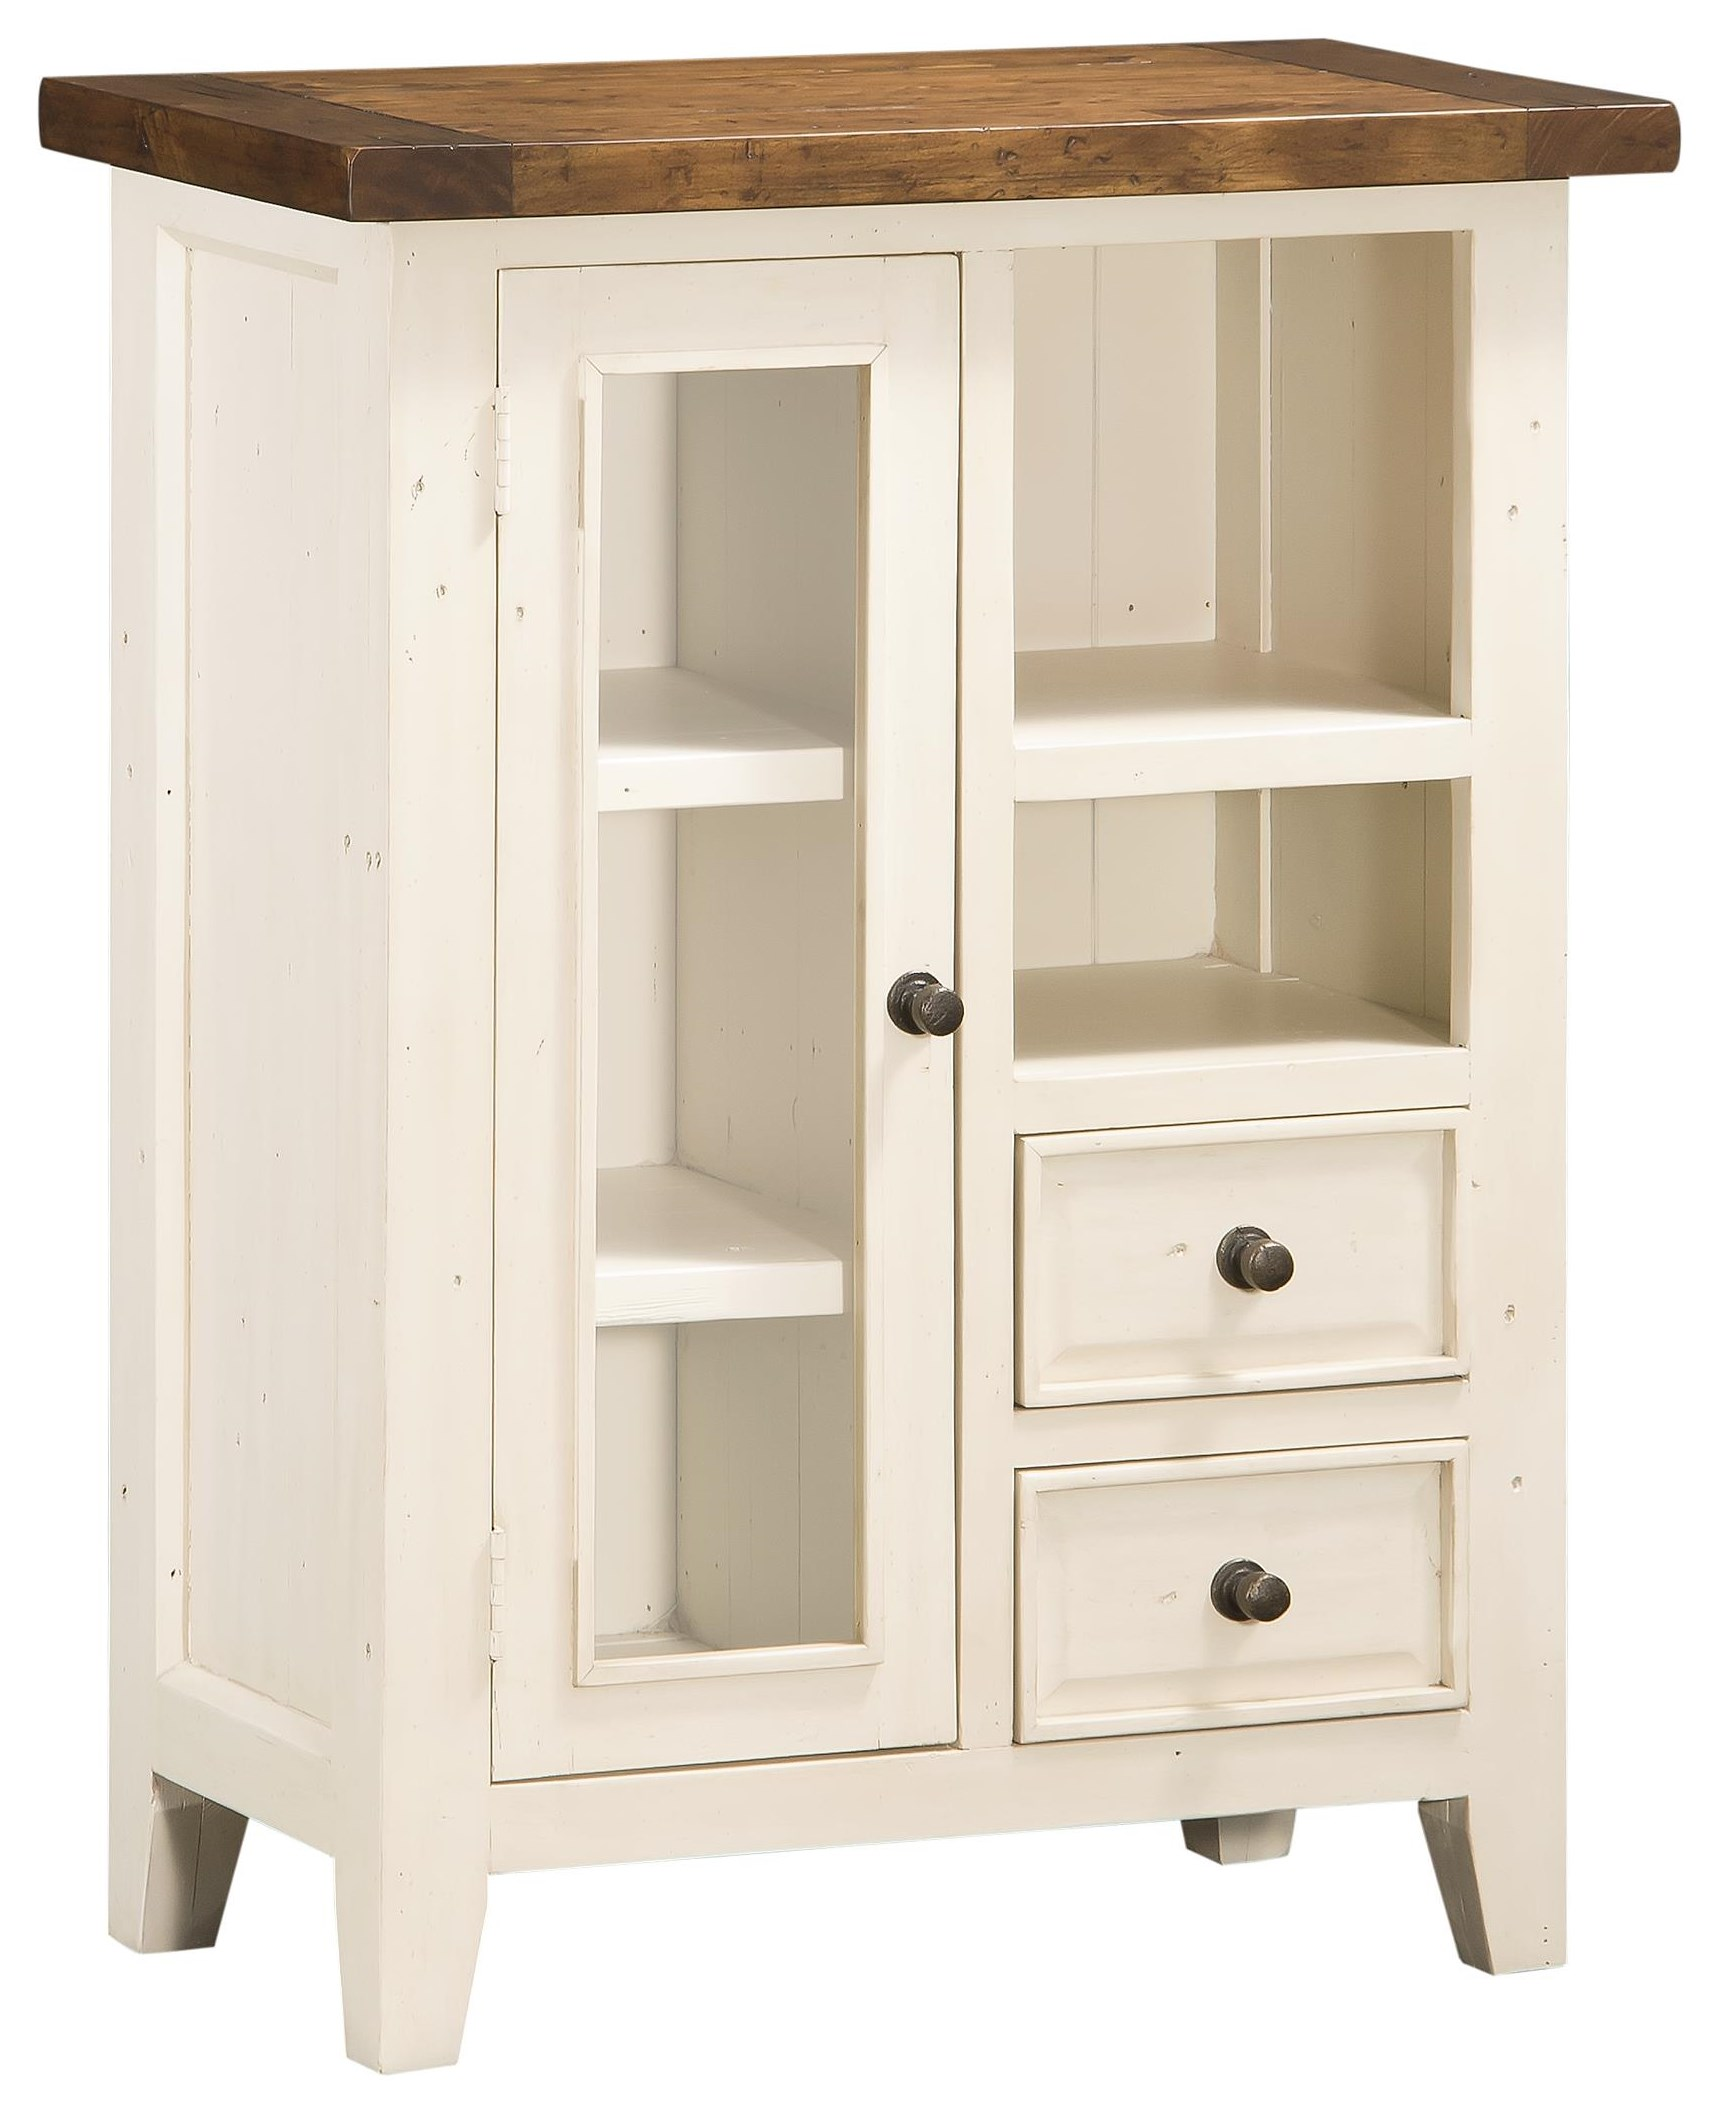 Tuscan Retreat White Door Cabinet by Hillsdale at Stoney Creek Furniture